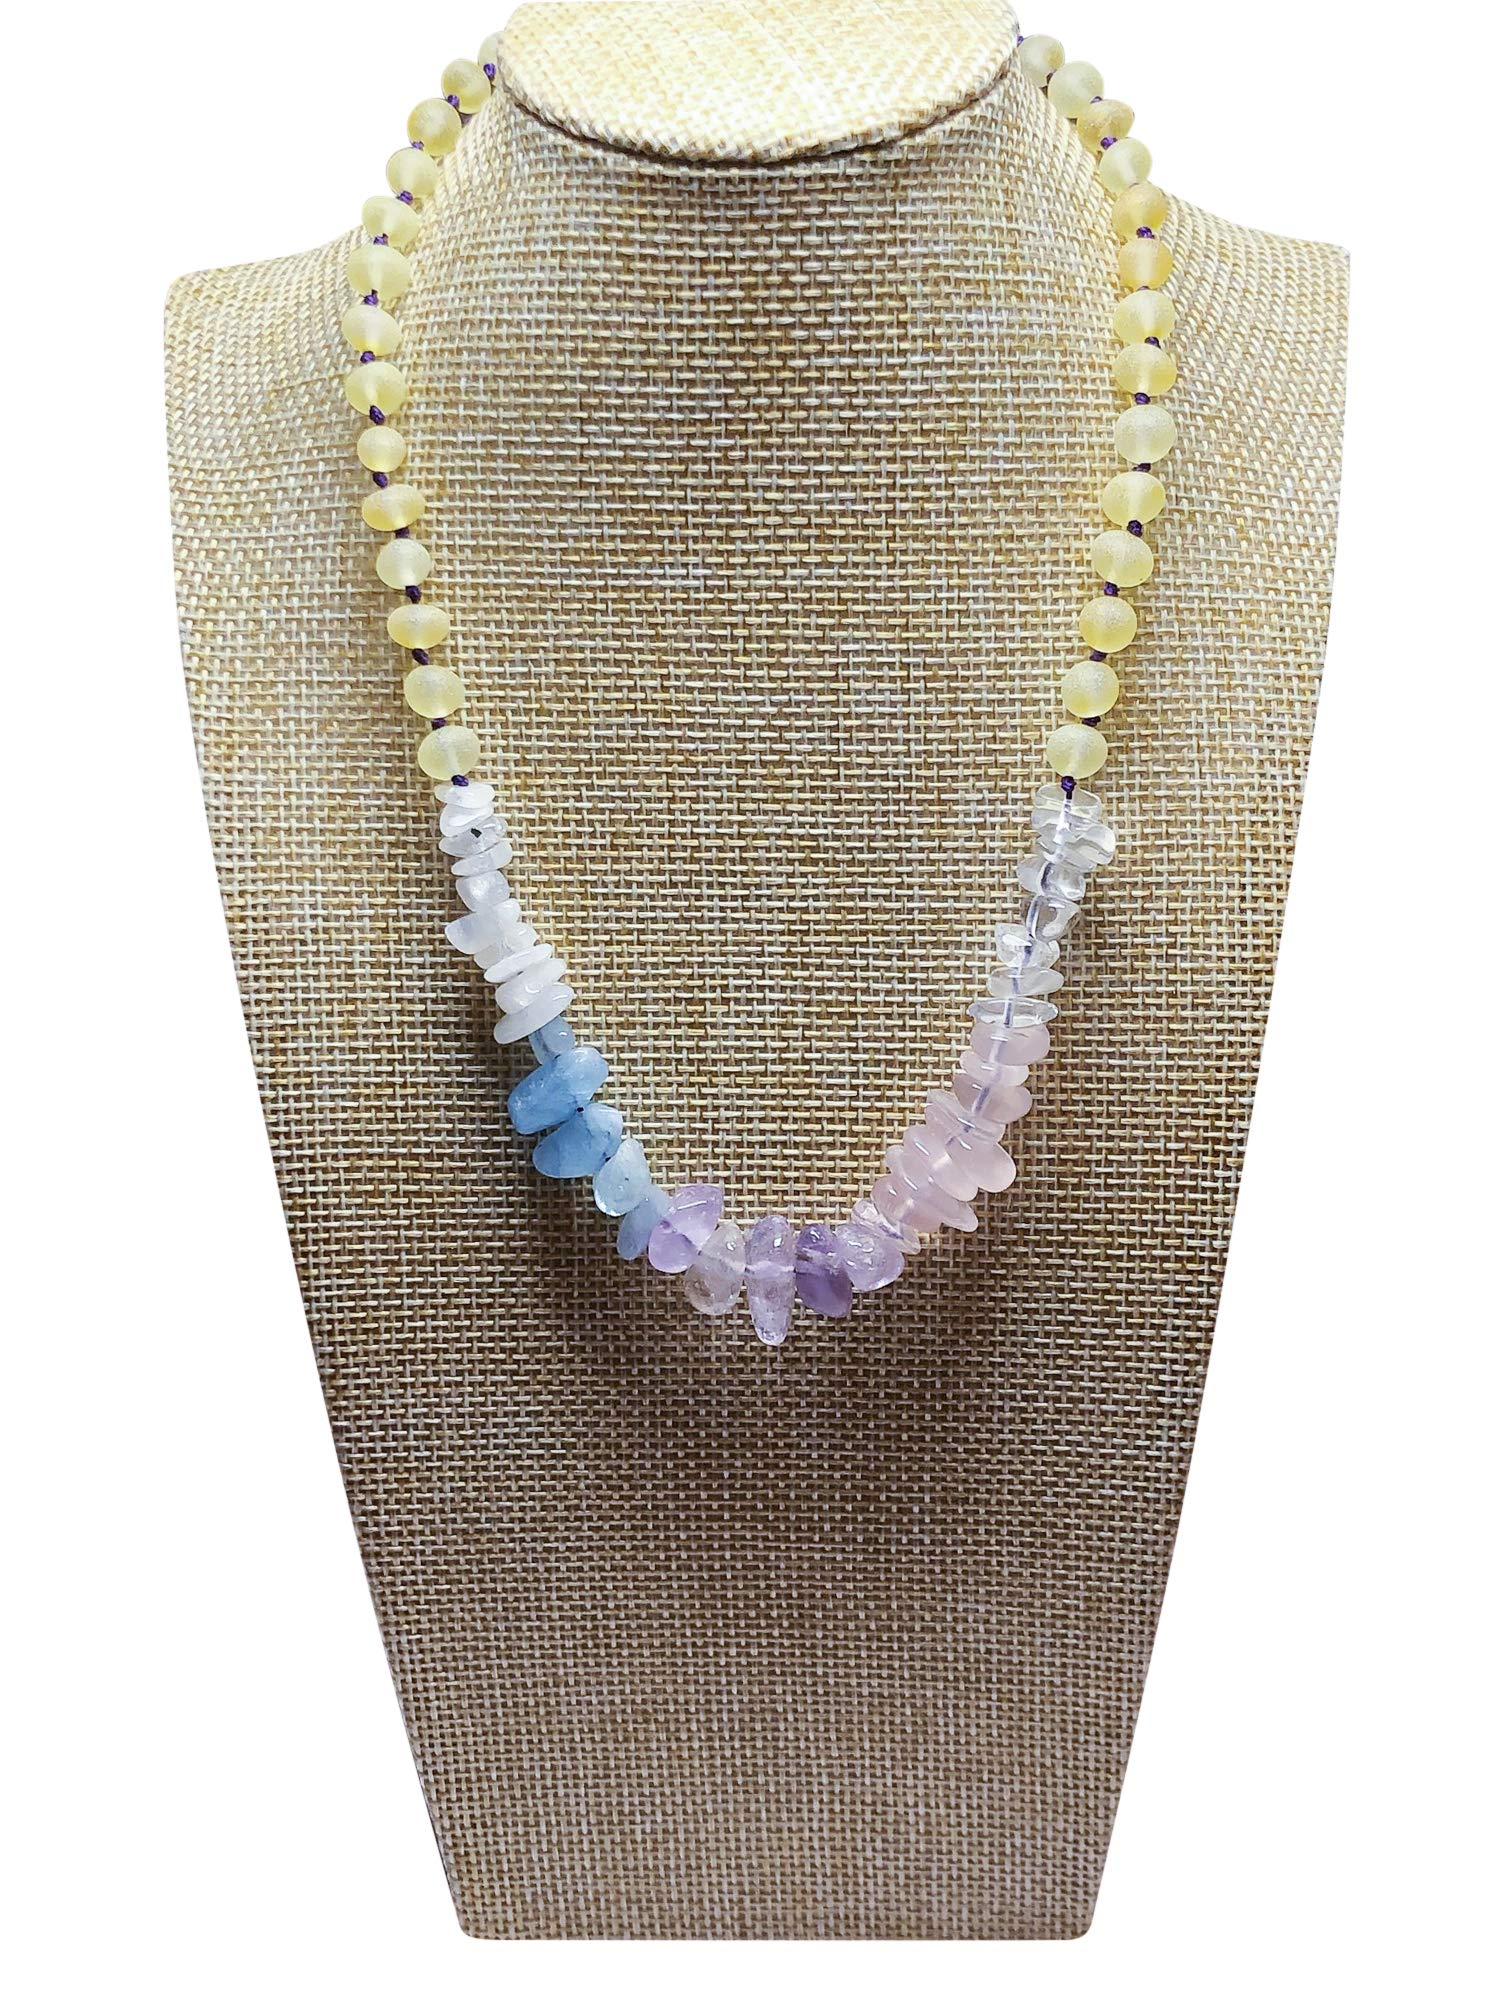 Gemstone + Baltic Amber Necklace for Kids - 16 inches - Heal Naturally (Pastel Gemstones) by Umai